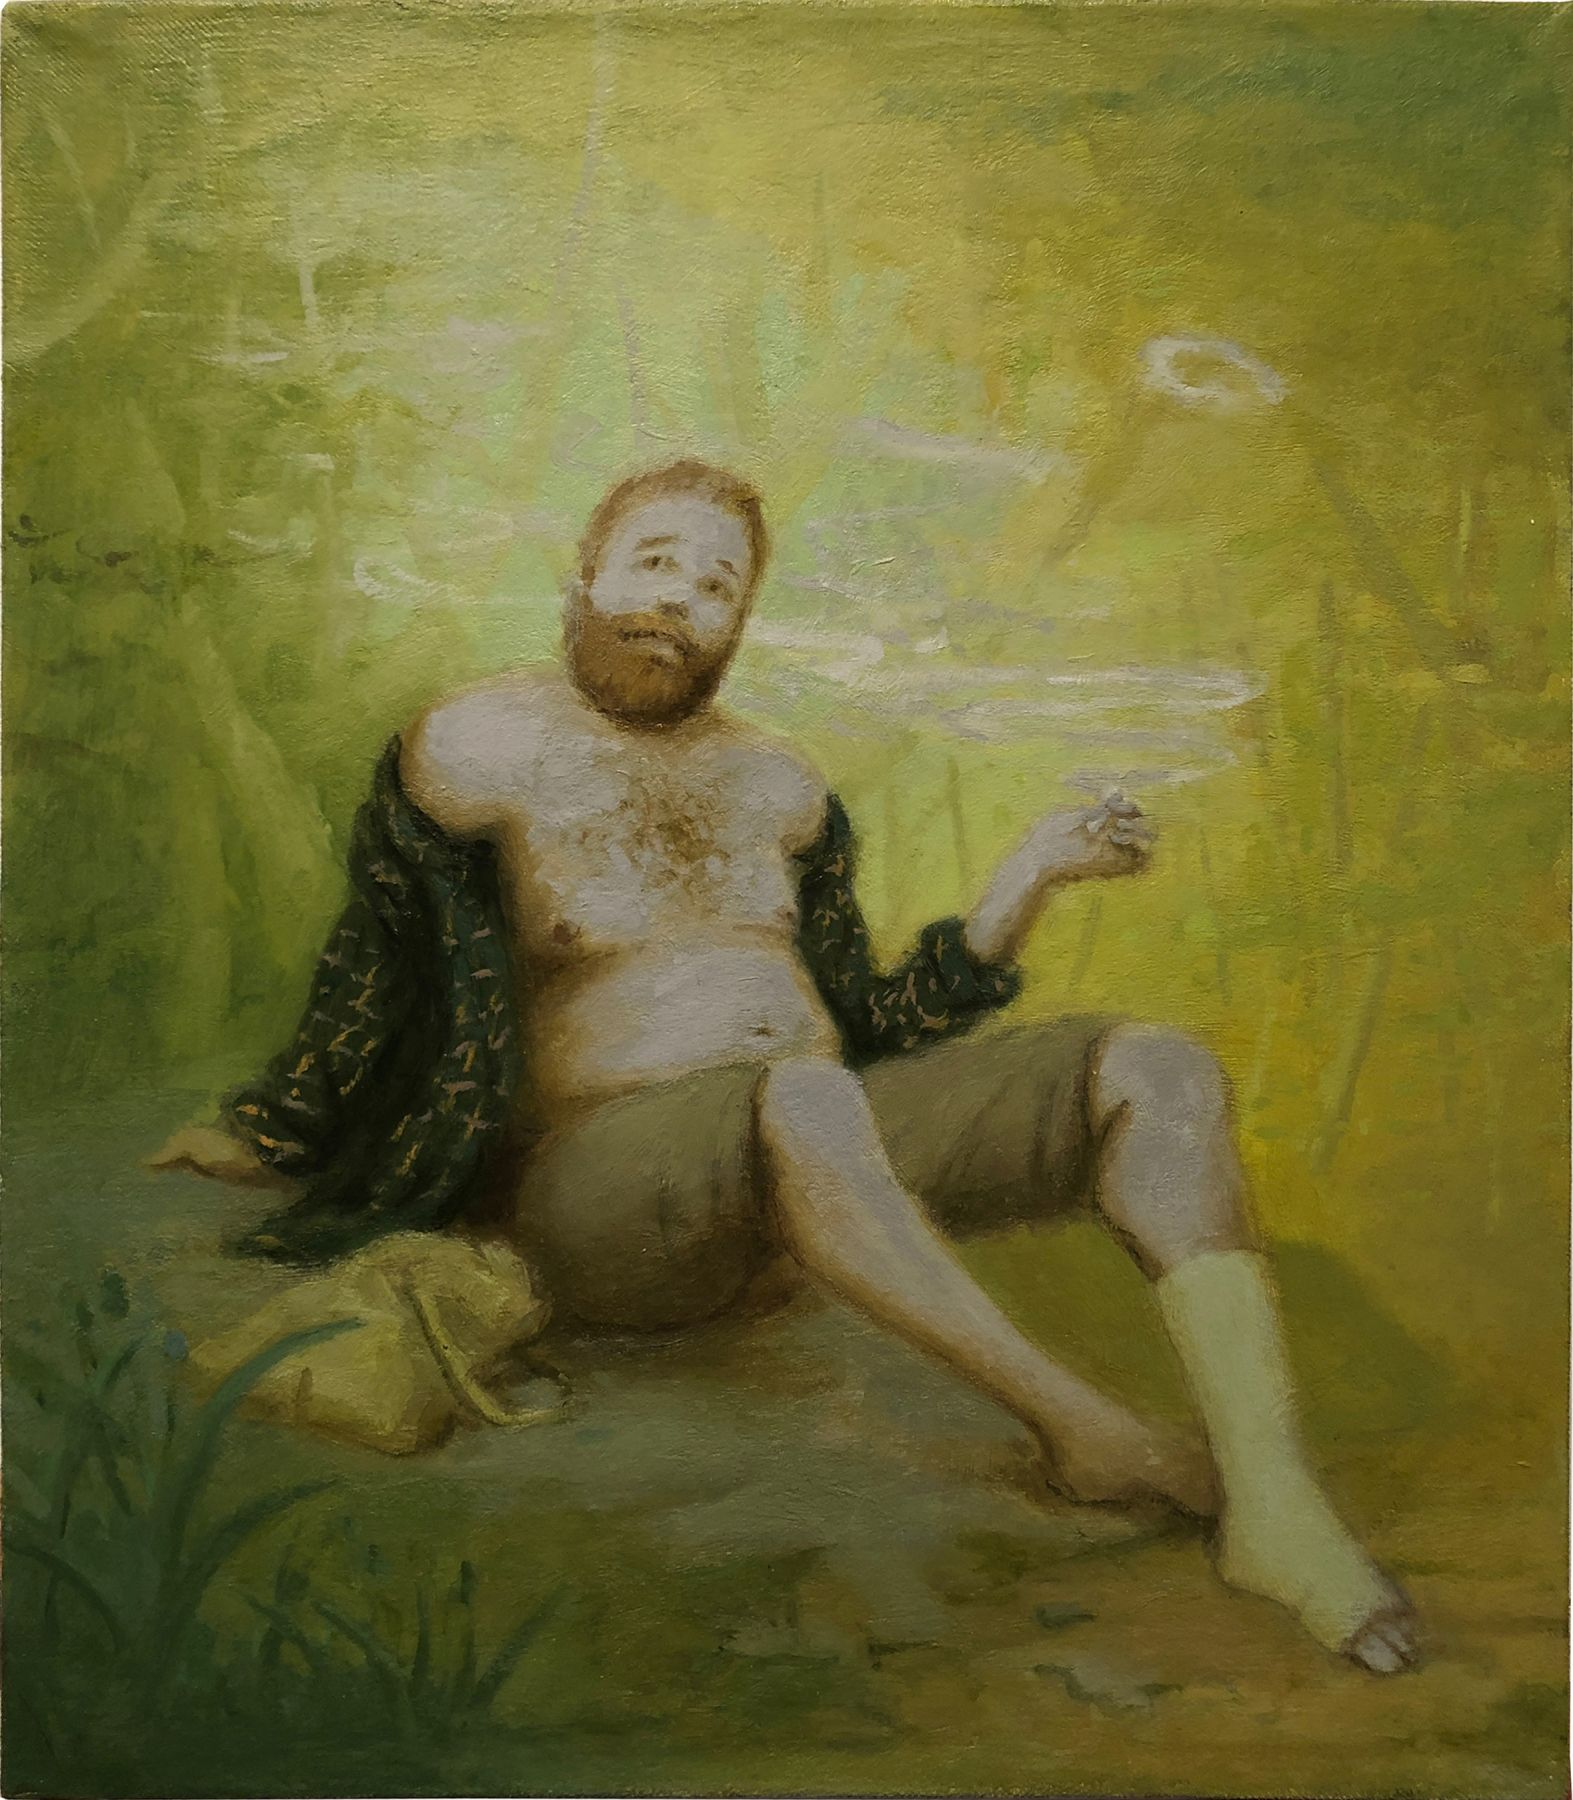 Kyle Coniglio, Bear with broken ankle, 2019